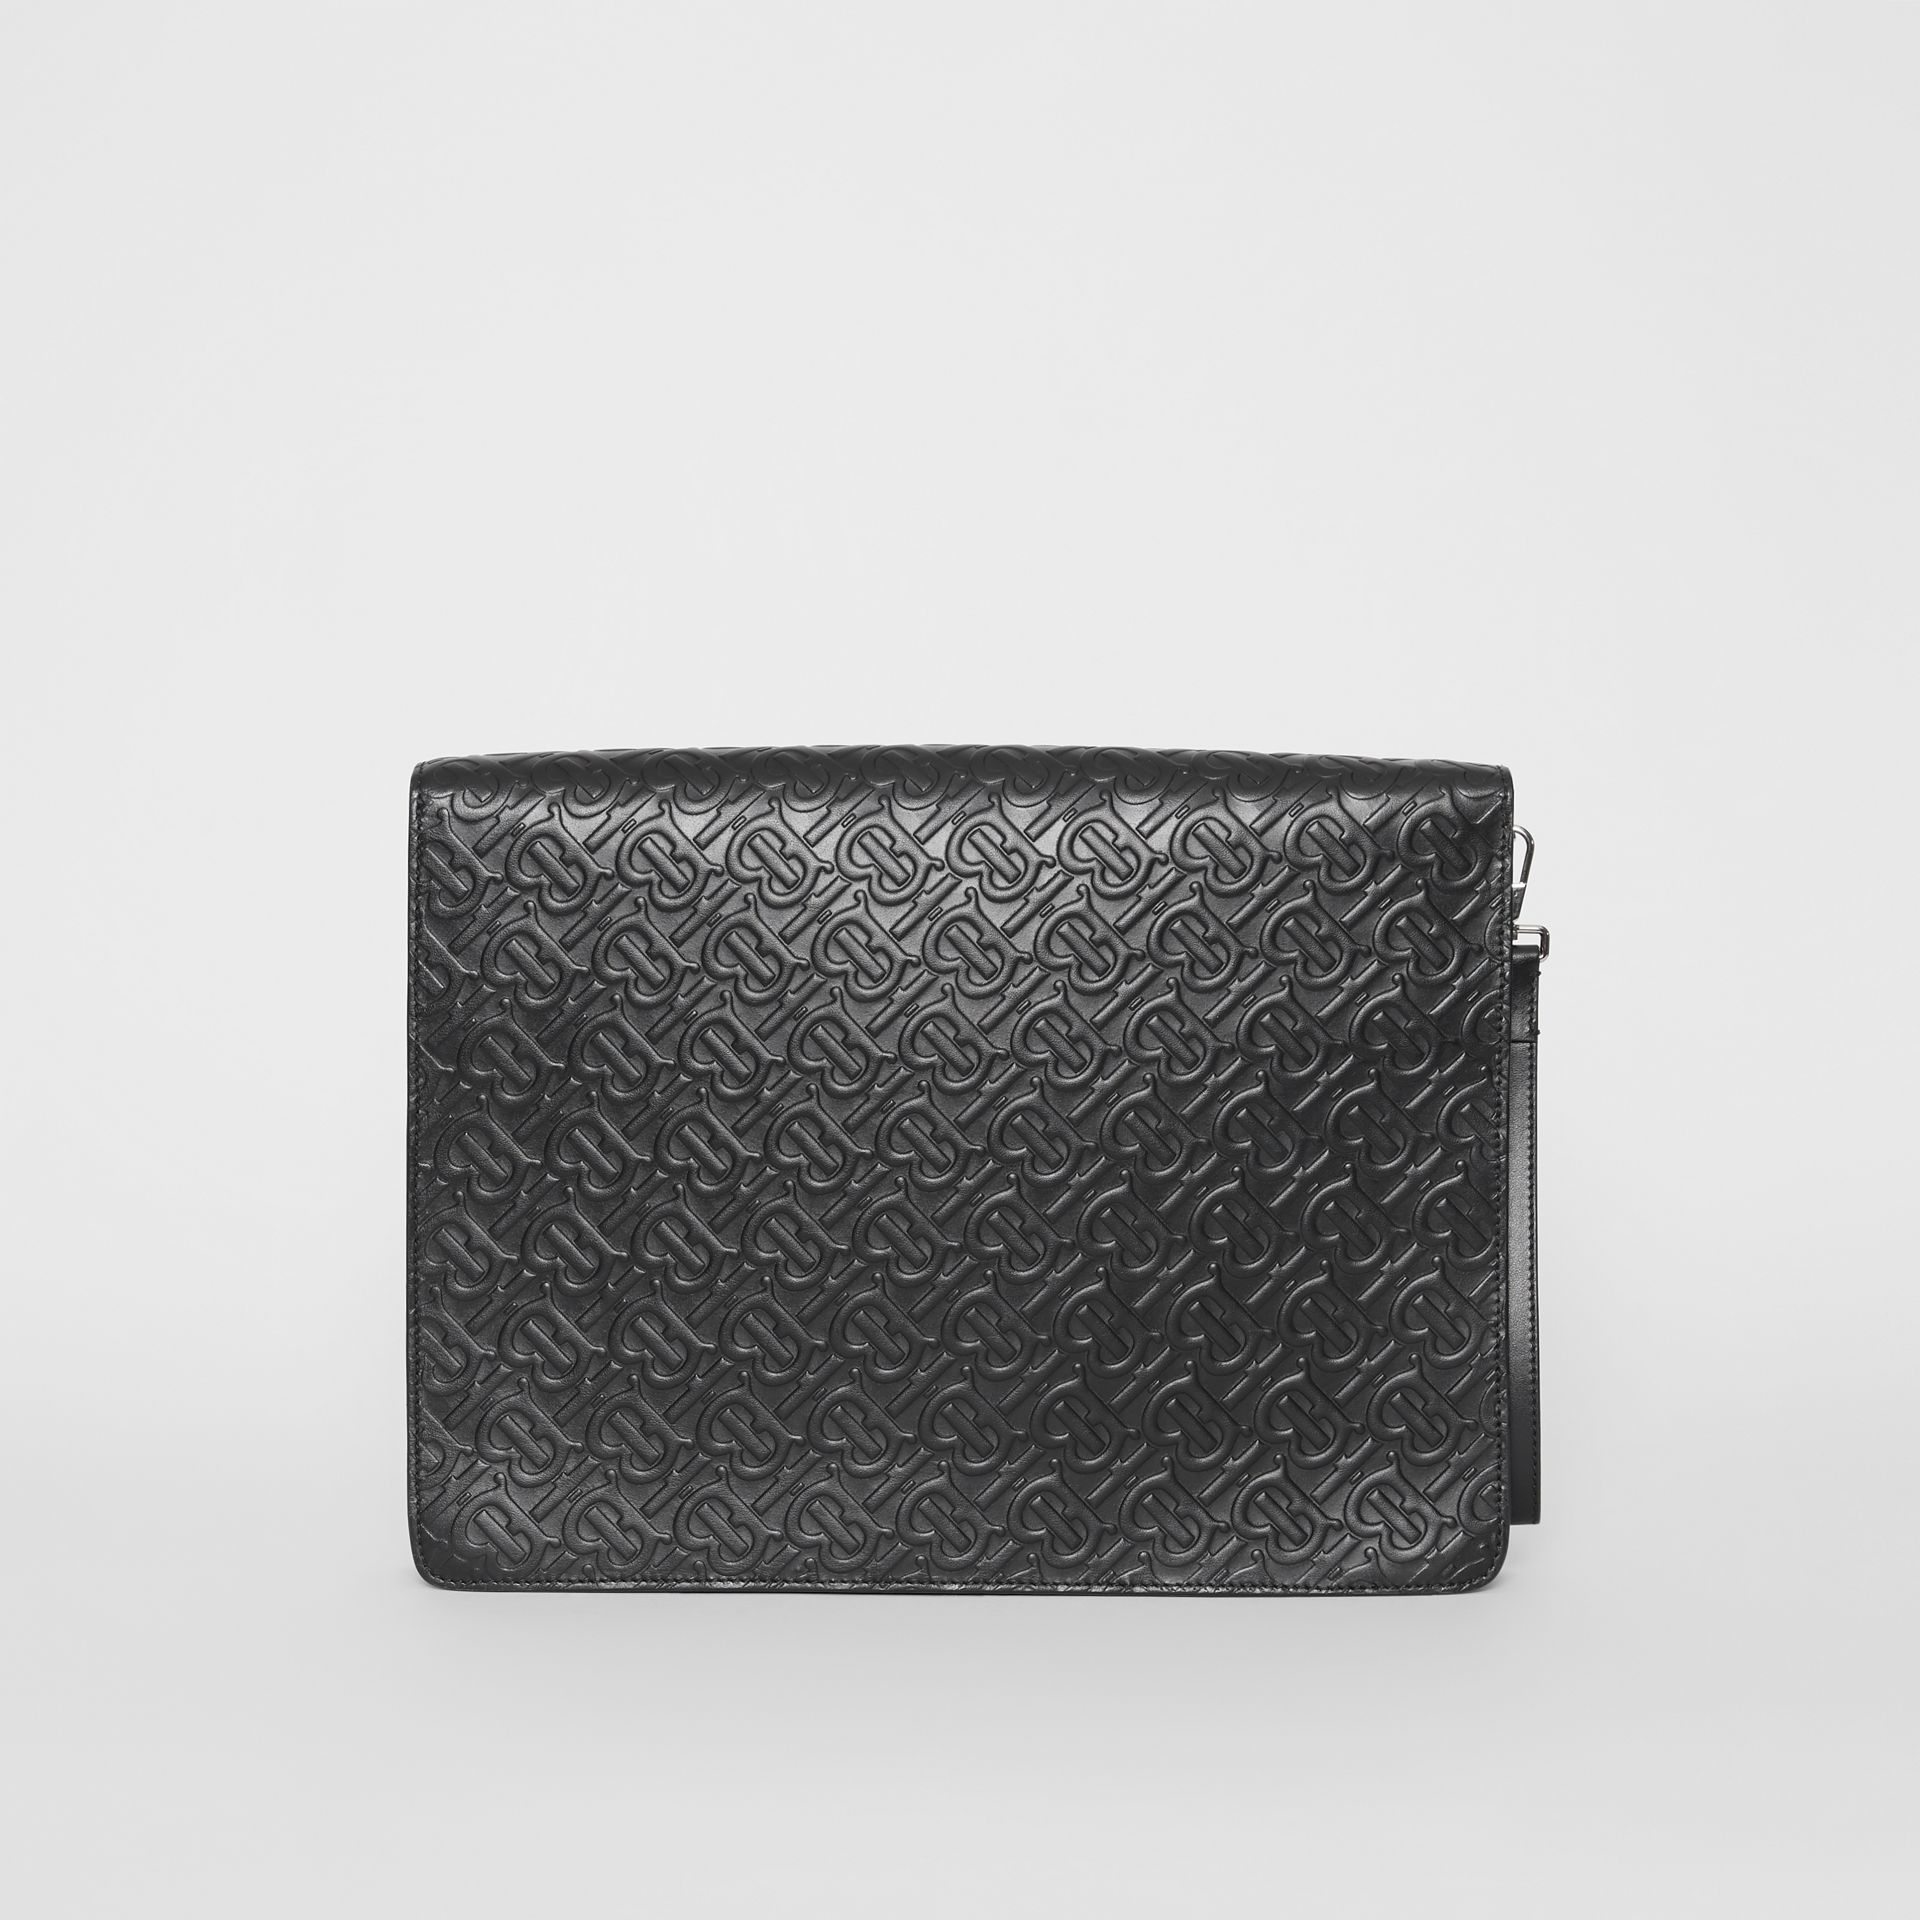 Triple Stud Monogram Leather Document Case in Black - Men | Burberry United Kingdom - gallery image 4